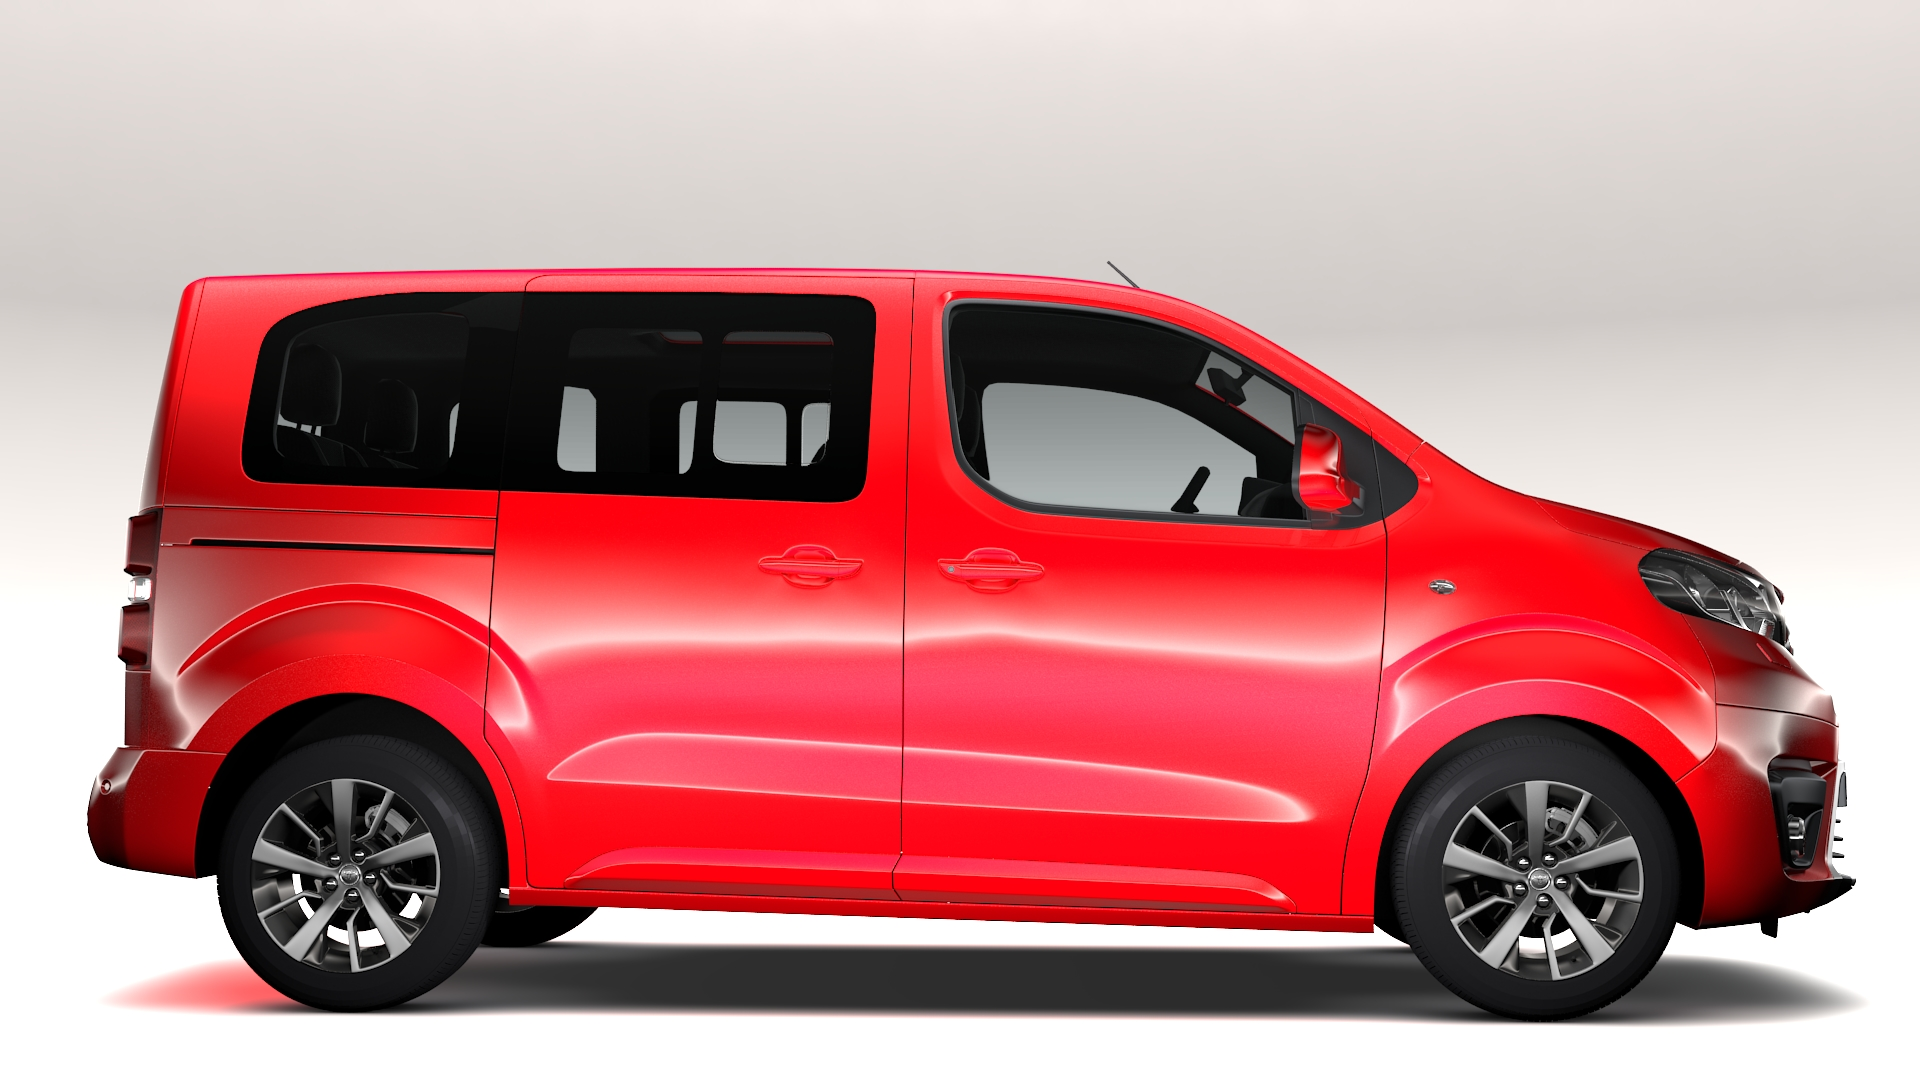 toyota proace verso l1 2017 3d model buy toyota proace verso l1 2017 3d model flatpyramid. Black Bedroom Furniture Sets. Home Design Ideas